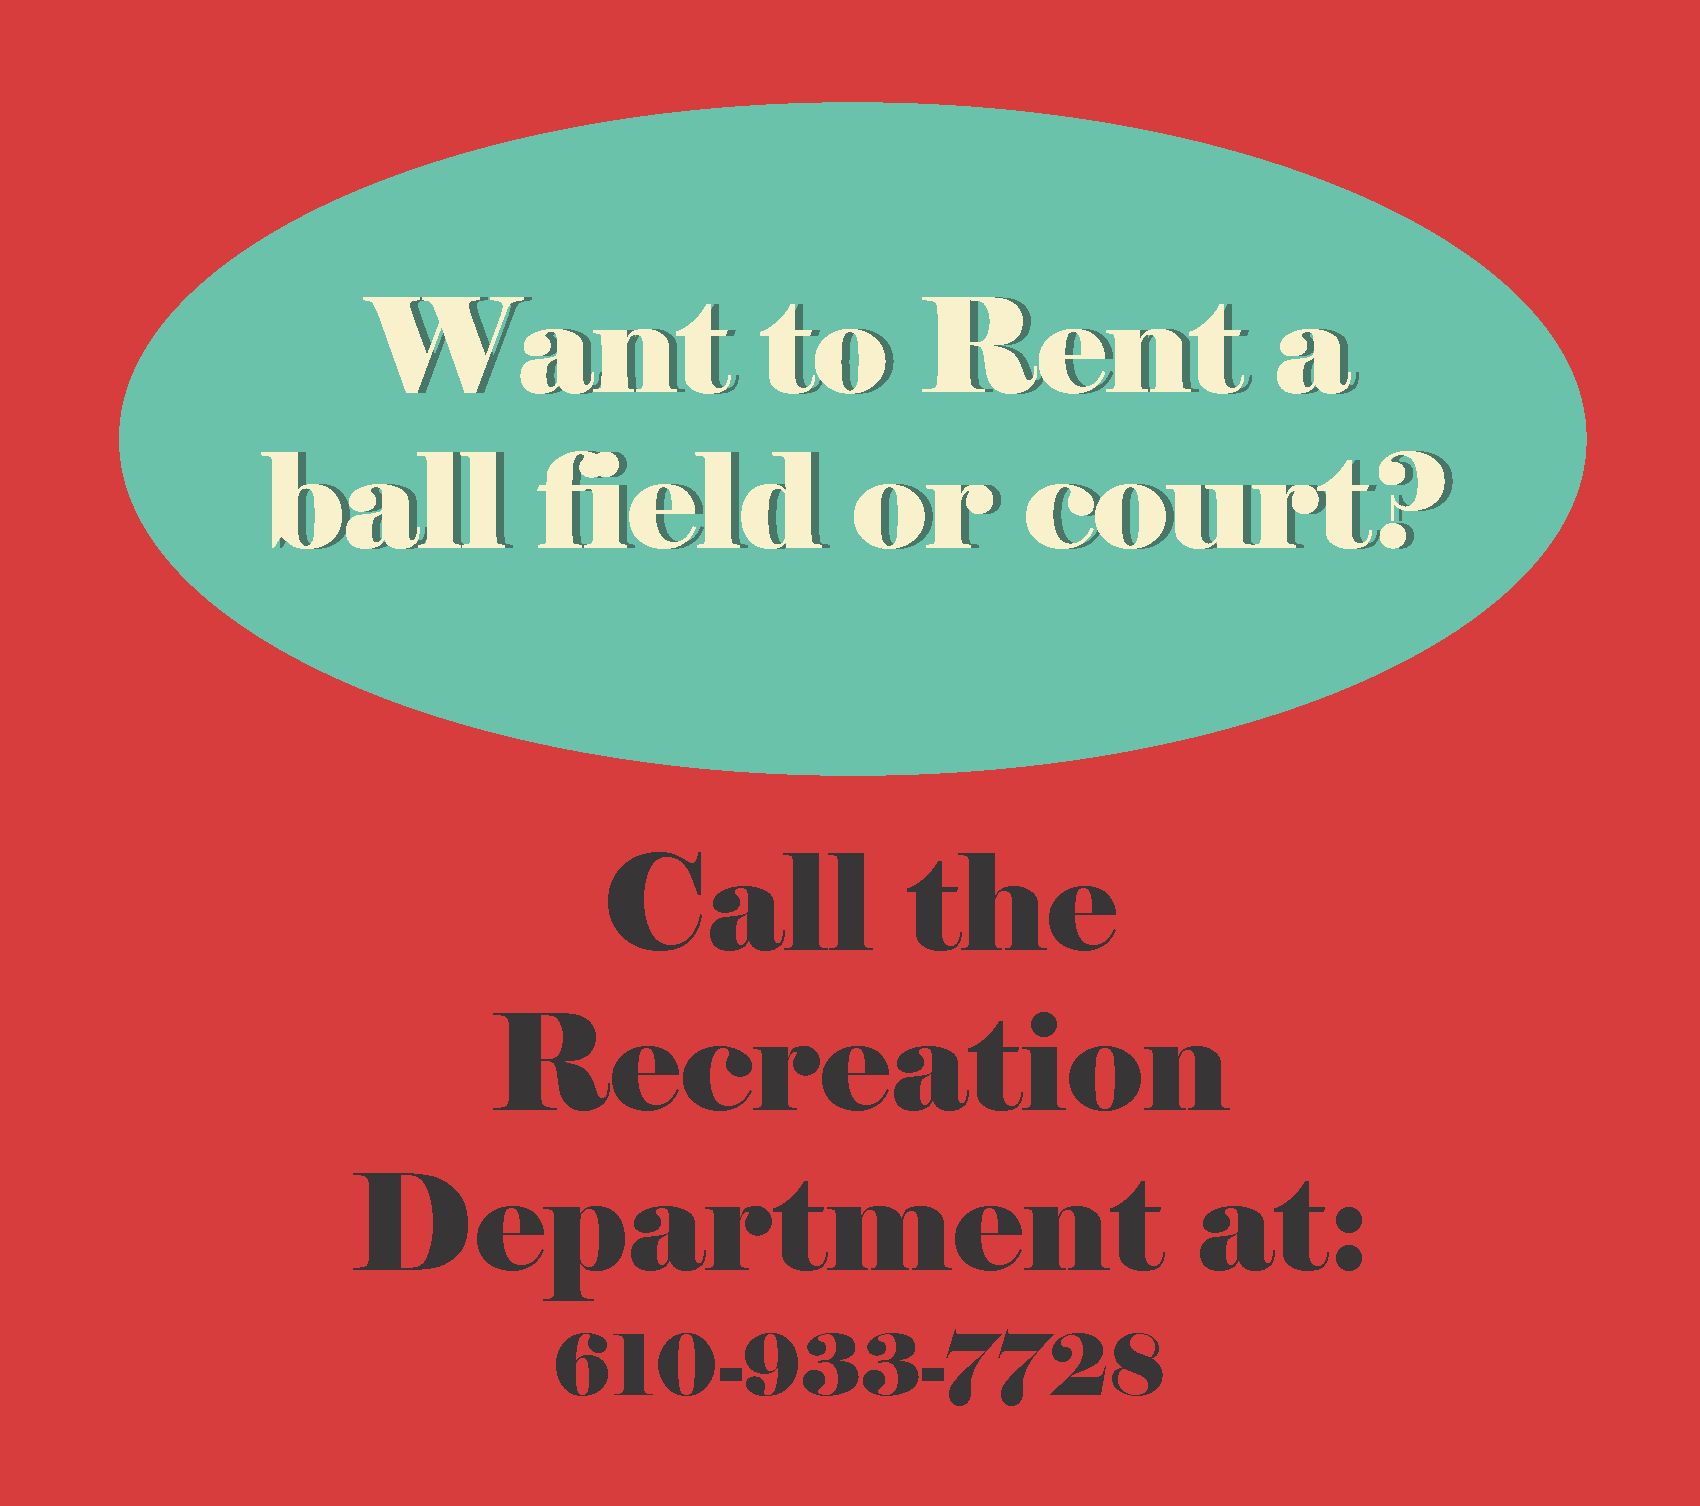 Want to rent a ball field or court, call Recreation at 610-933-7728